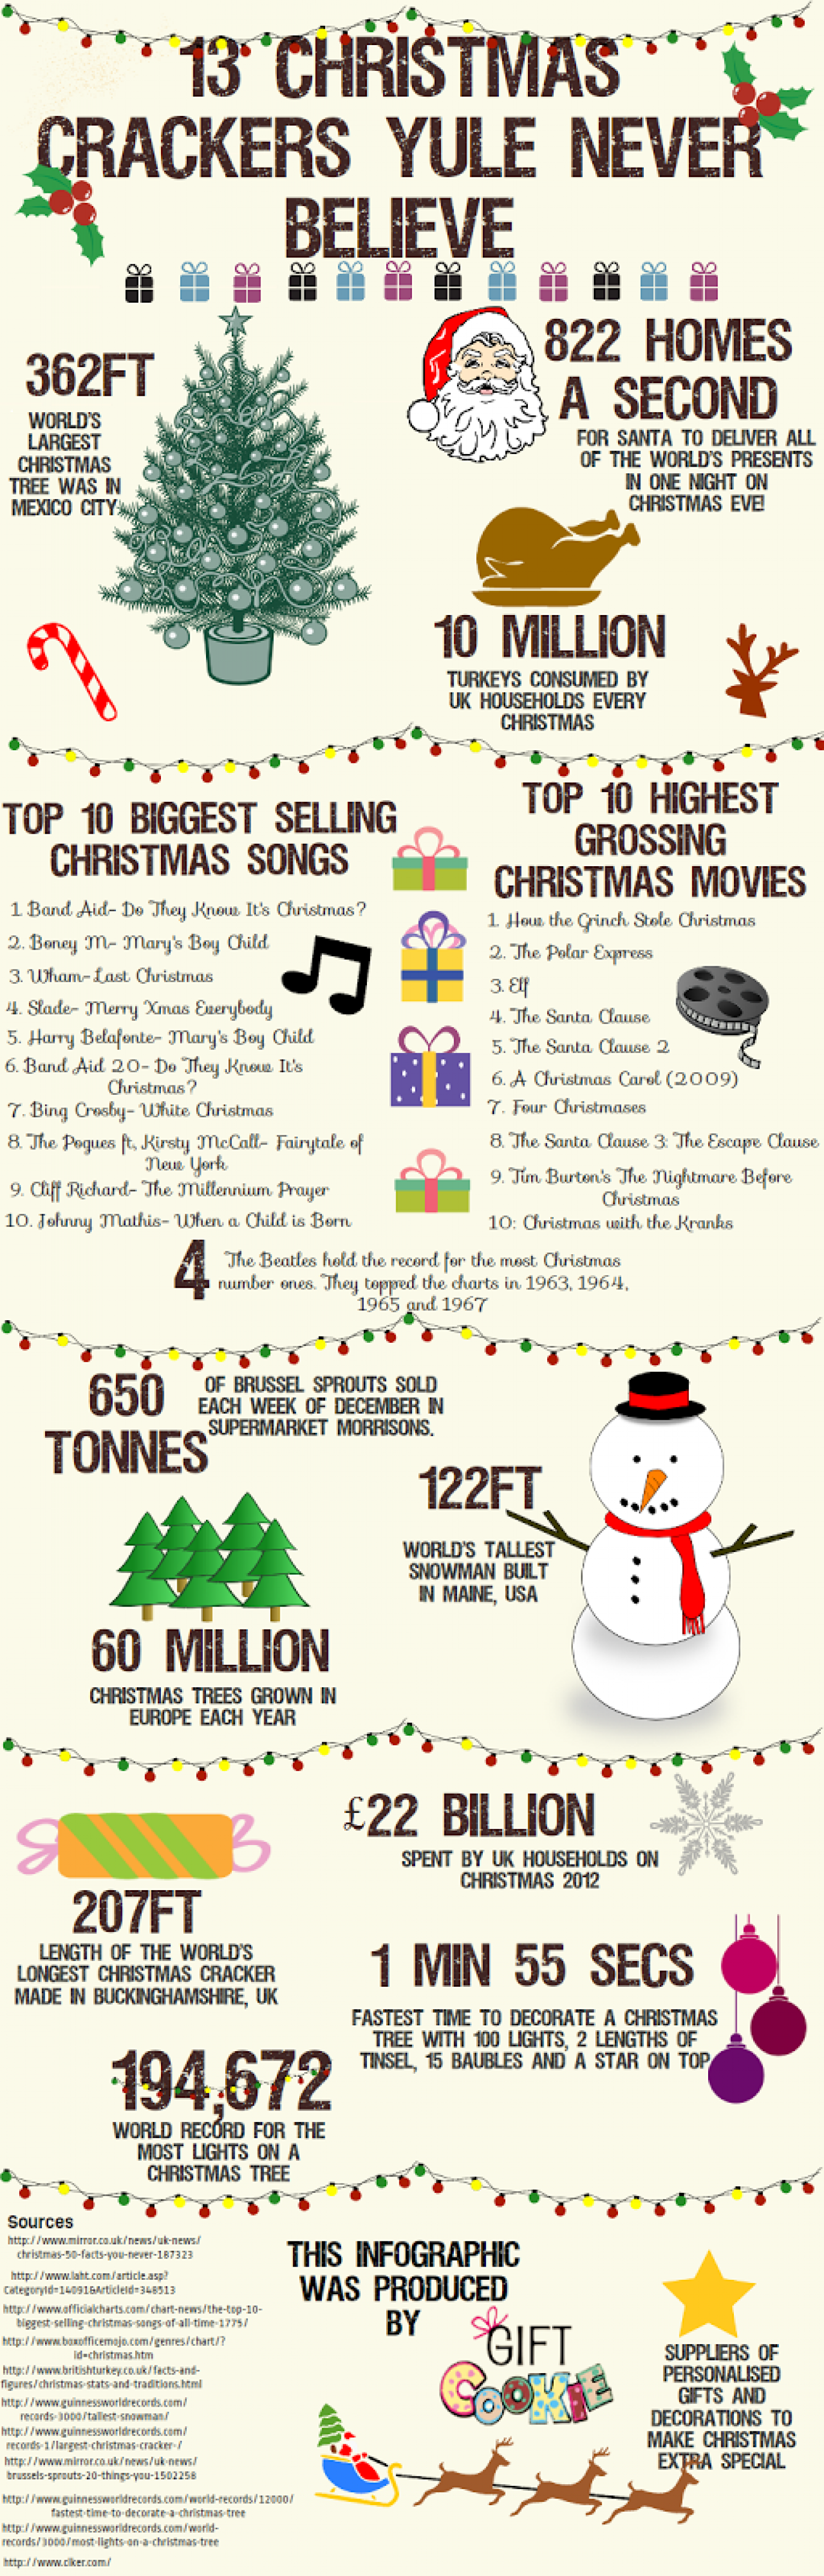 13 Christmas Crackers Yule Never Believe Infographic